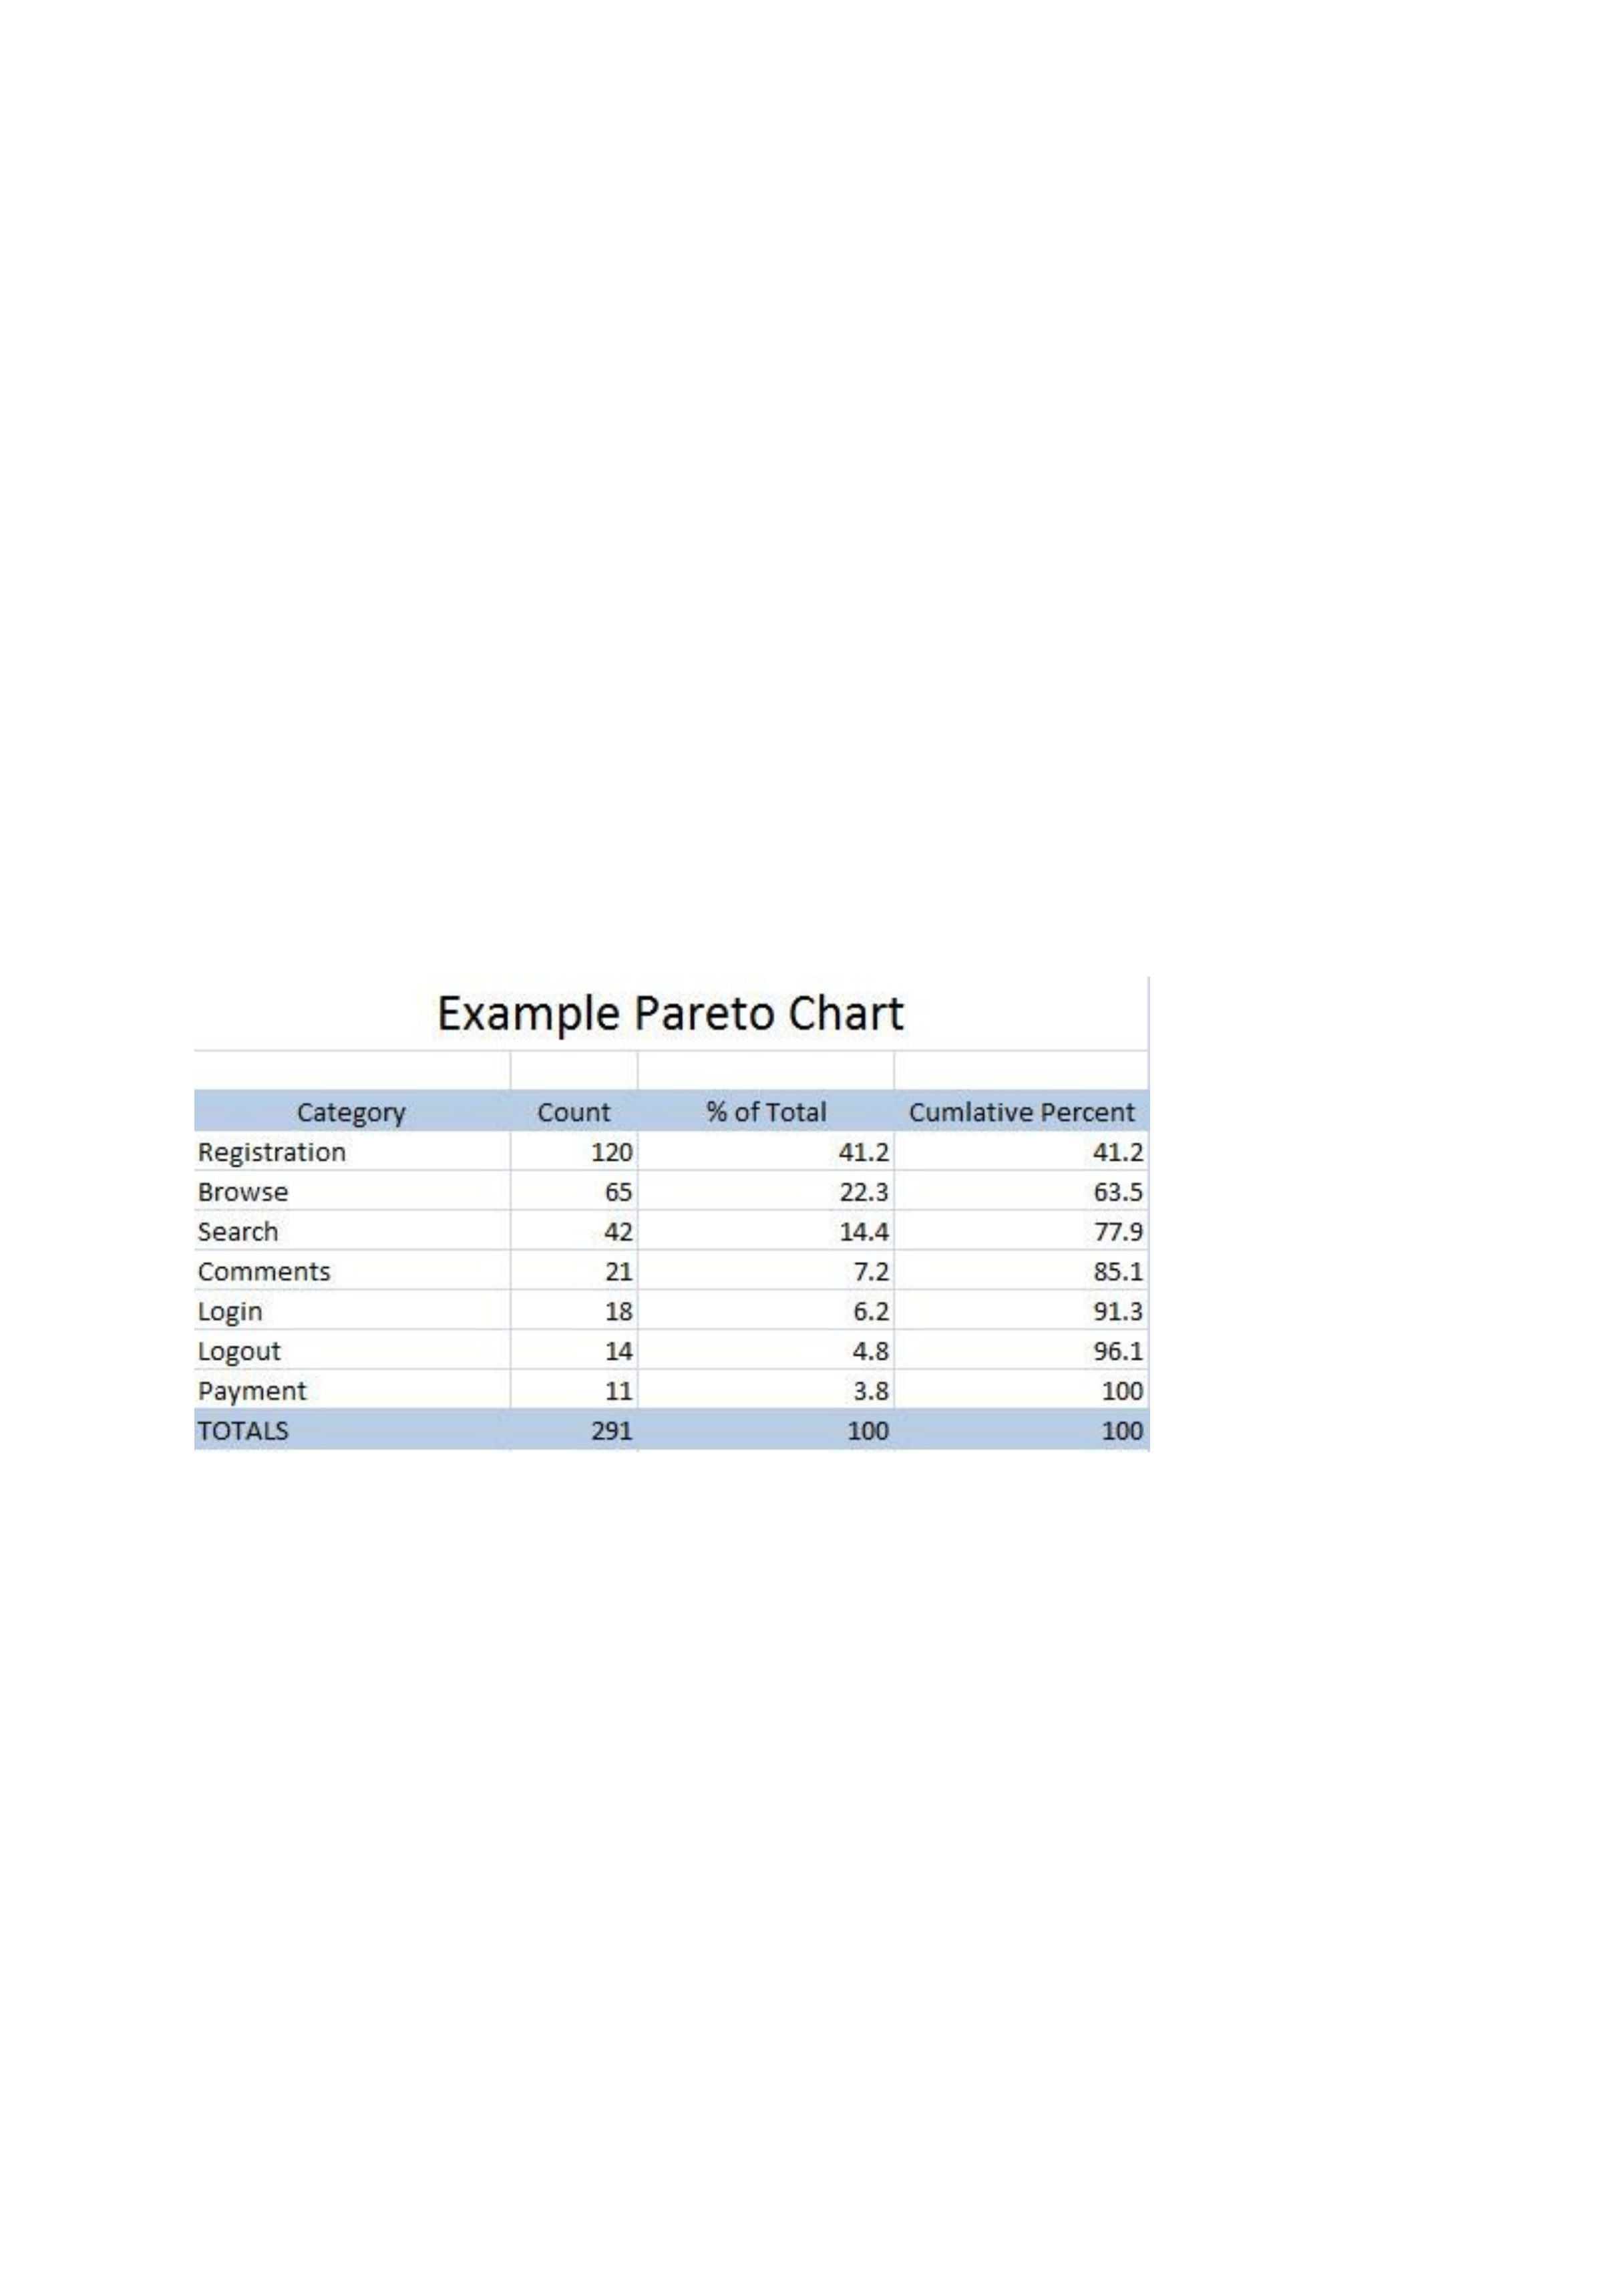 Pareto chart template download spotnature pareto chart template download nvjuhfo Image collections